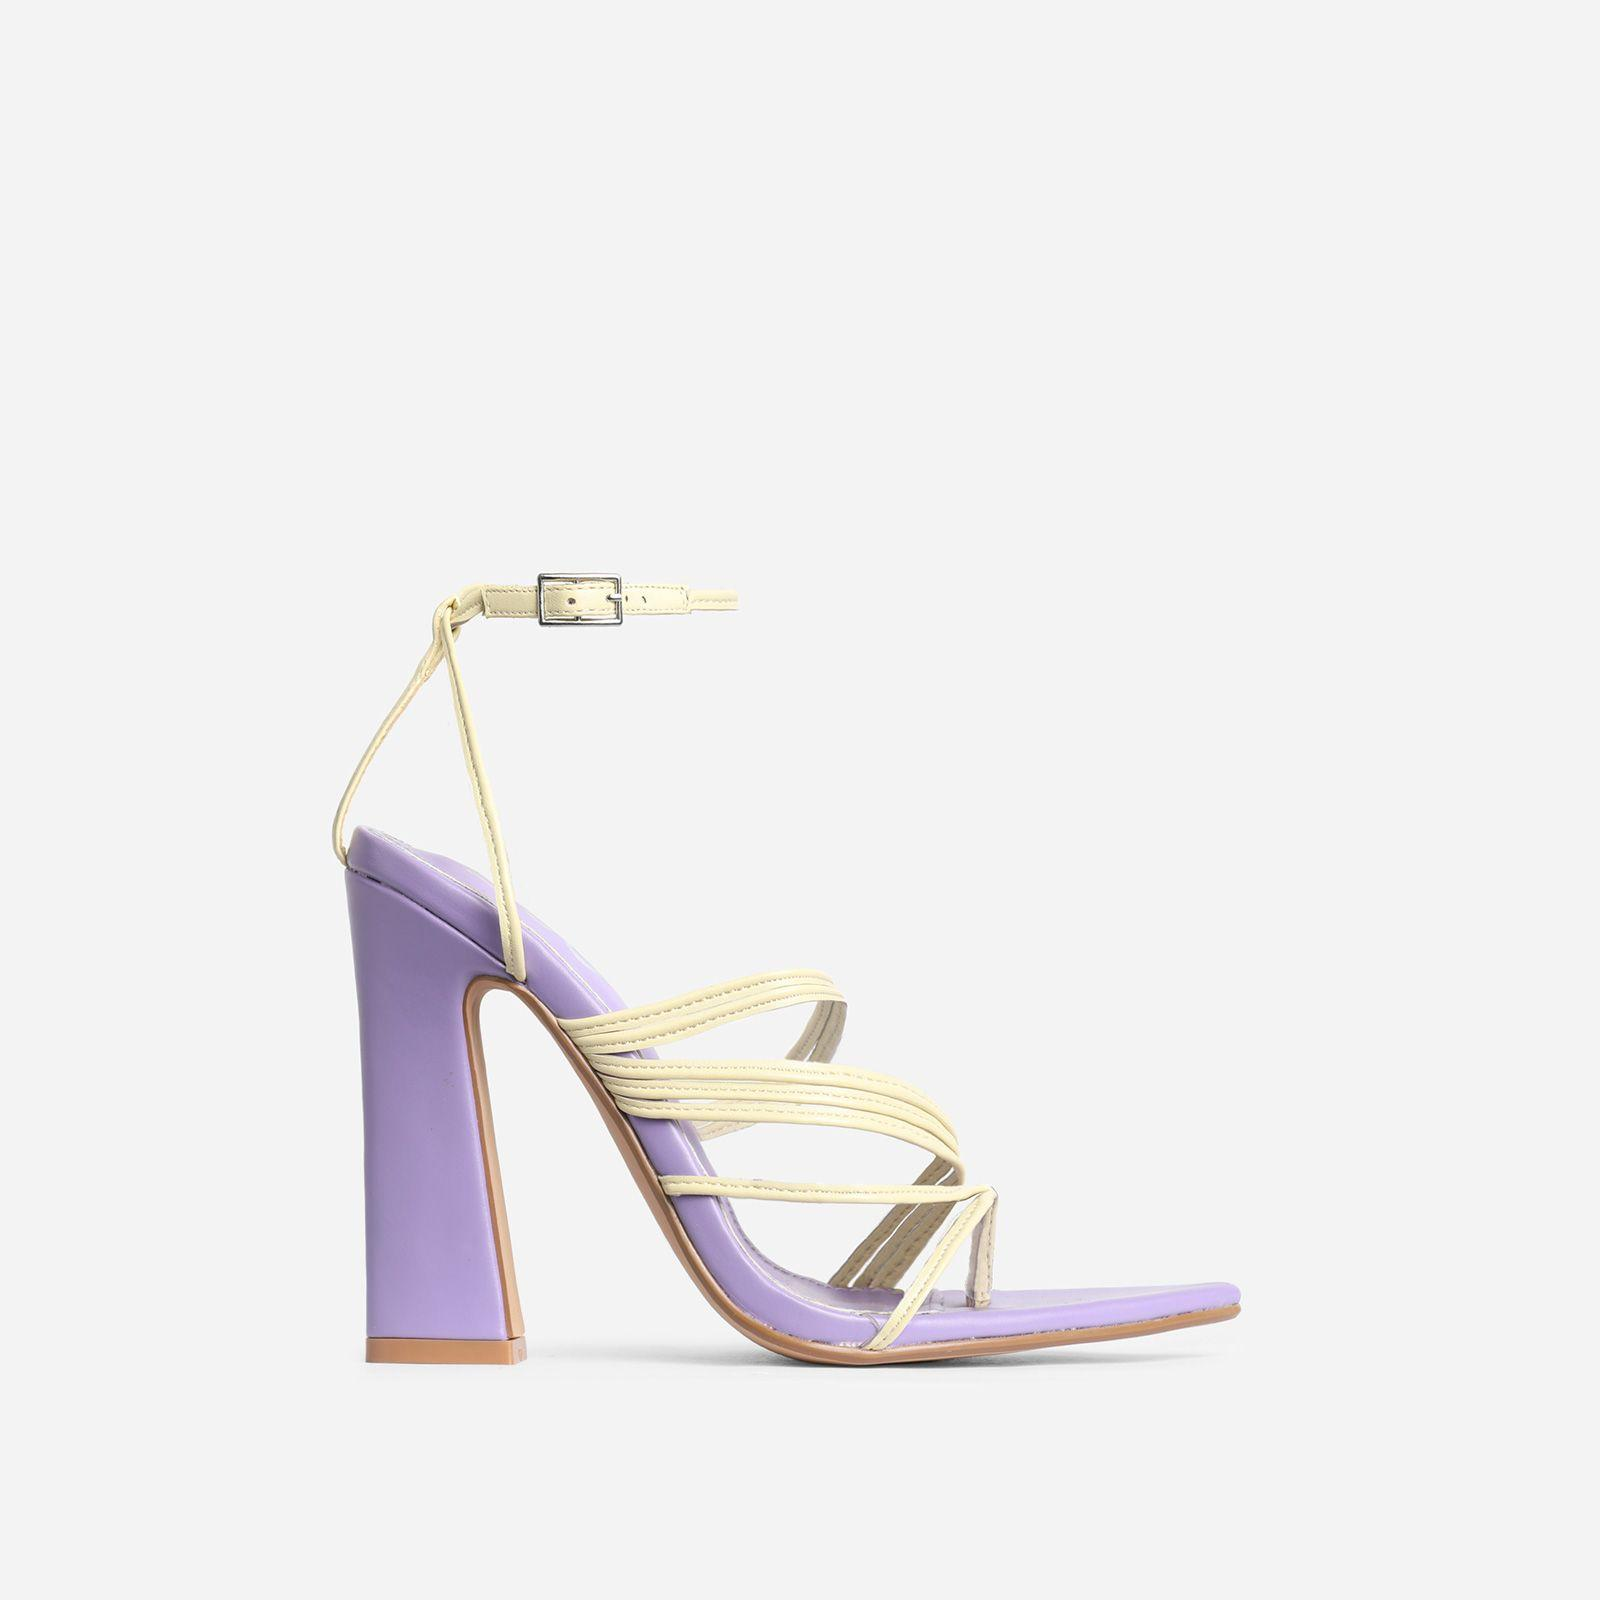 Scout Pointed Toe Yellow Strappy Flared Block Heel In Lilac Purple Faux Leather Image 1